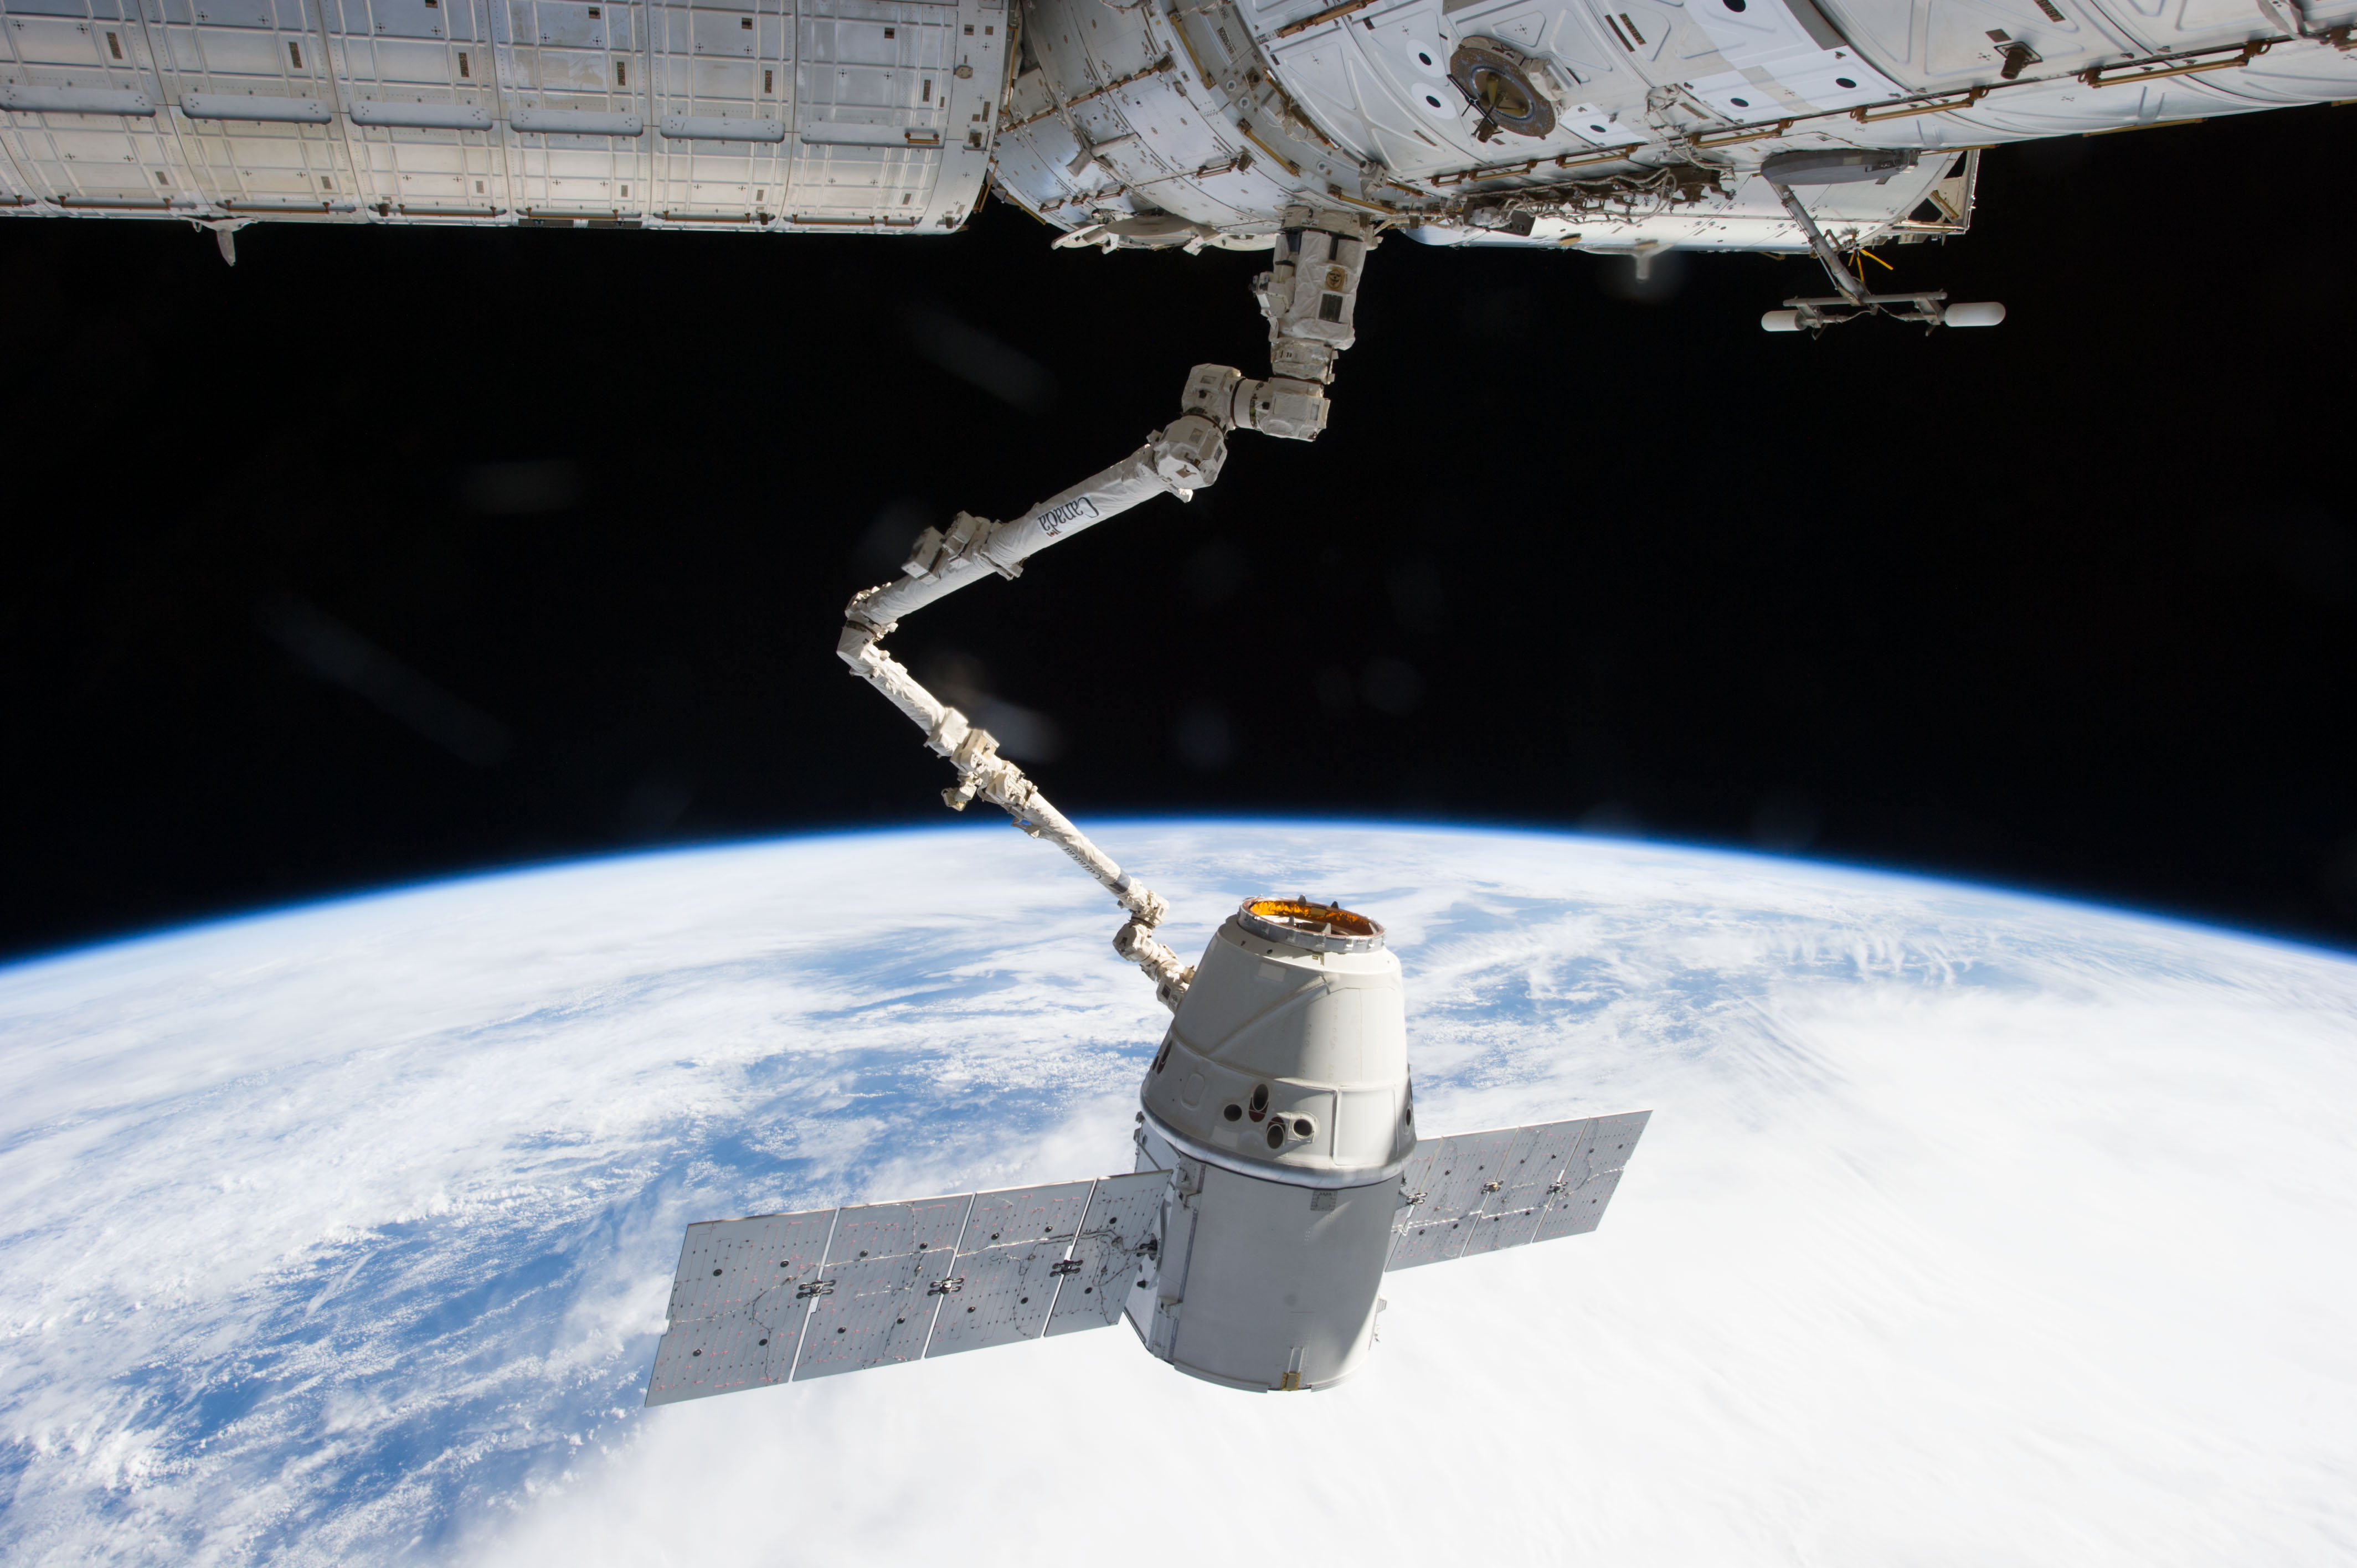 earth dragon from spacex - photo #36